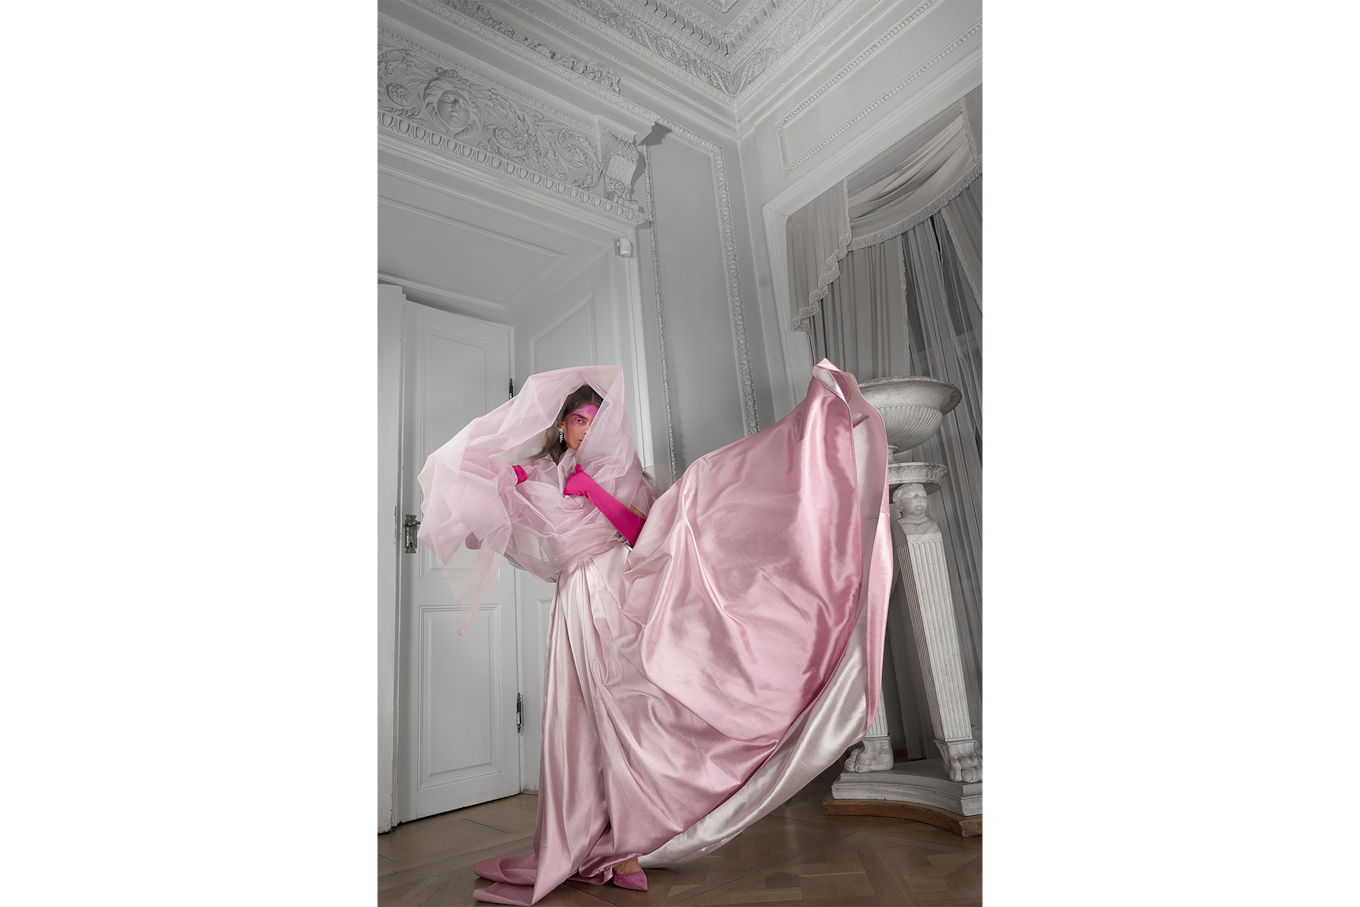 lidia popiel sony alpha 7r3 woman in a pink veil and silky dress raises a leg in a white room